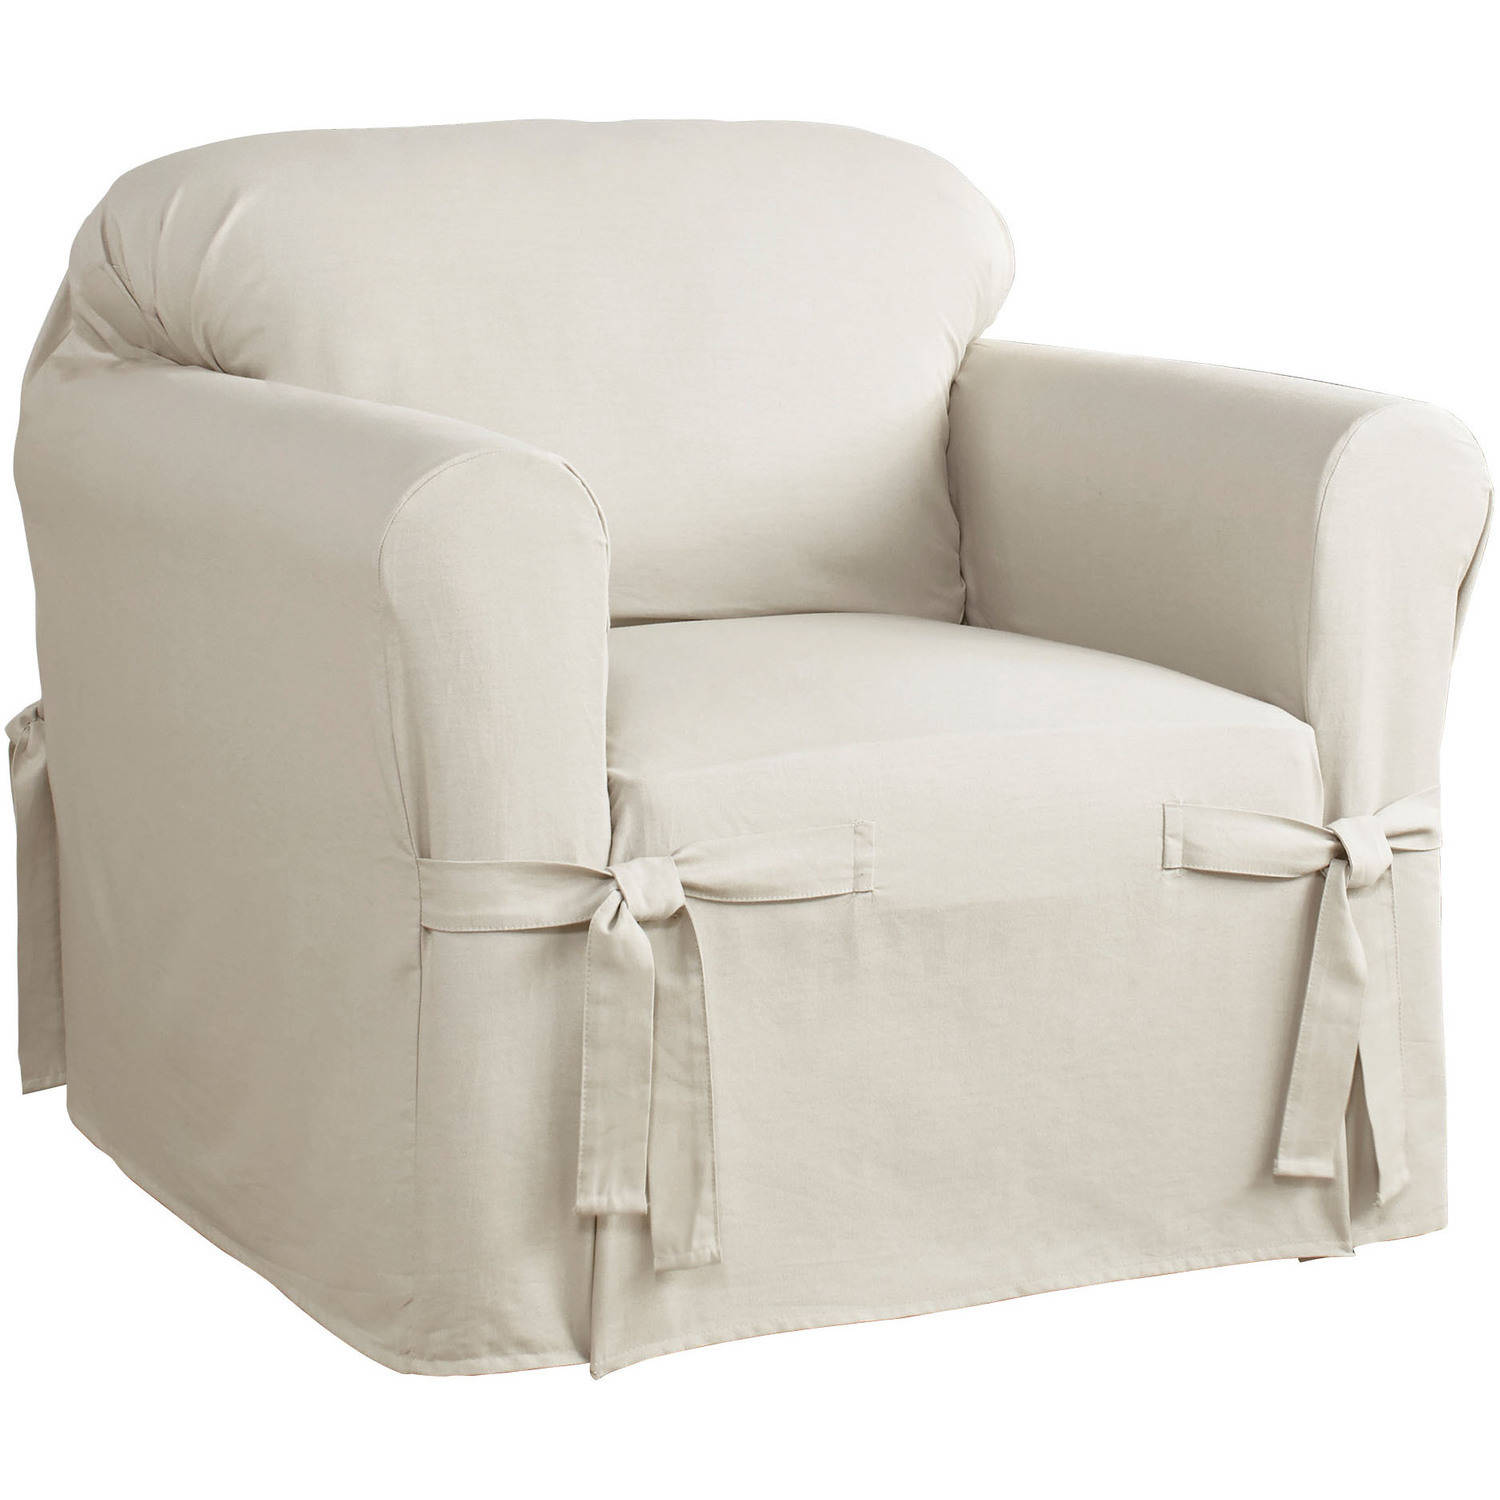 Slip Cover Chairs Wing Chair Slipcovers Walmart